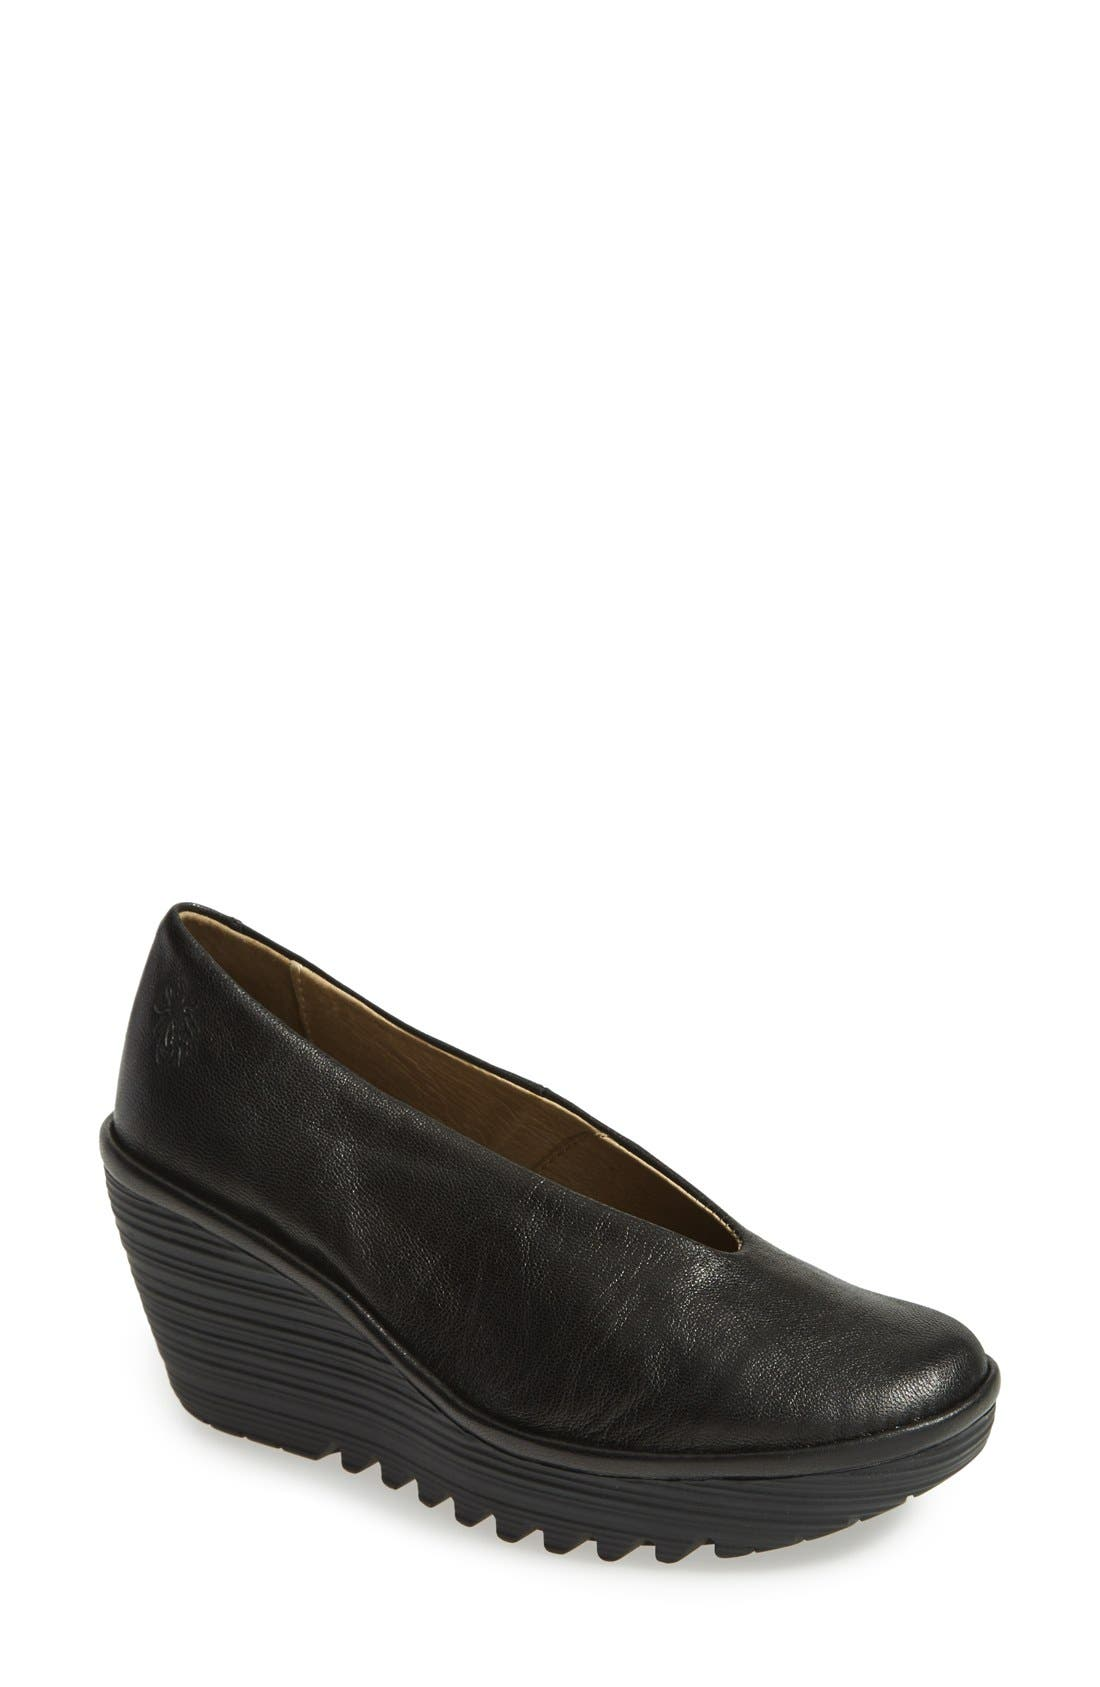 Alternate Image 1 Selected - Fly London 'Yaz' Wedge Pump